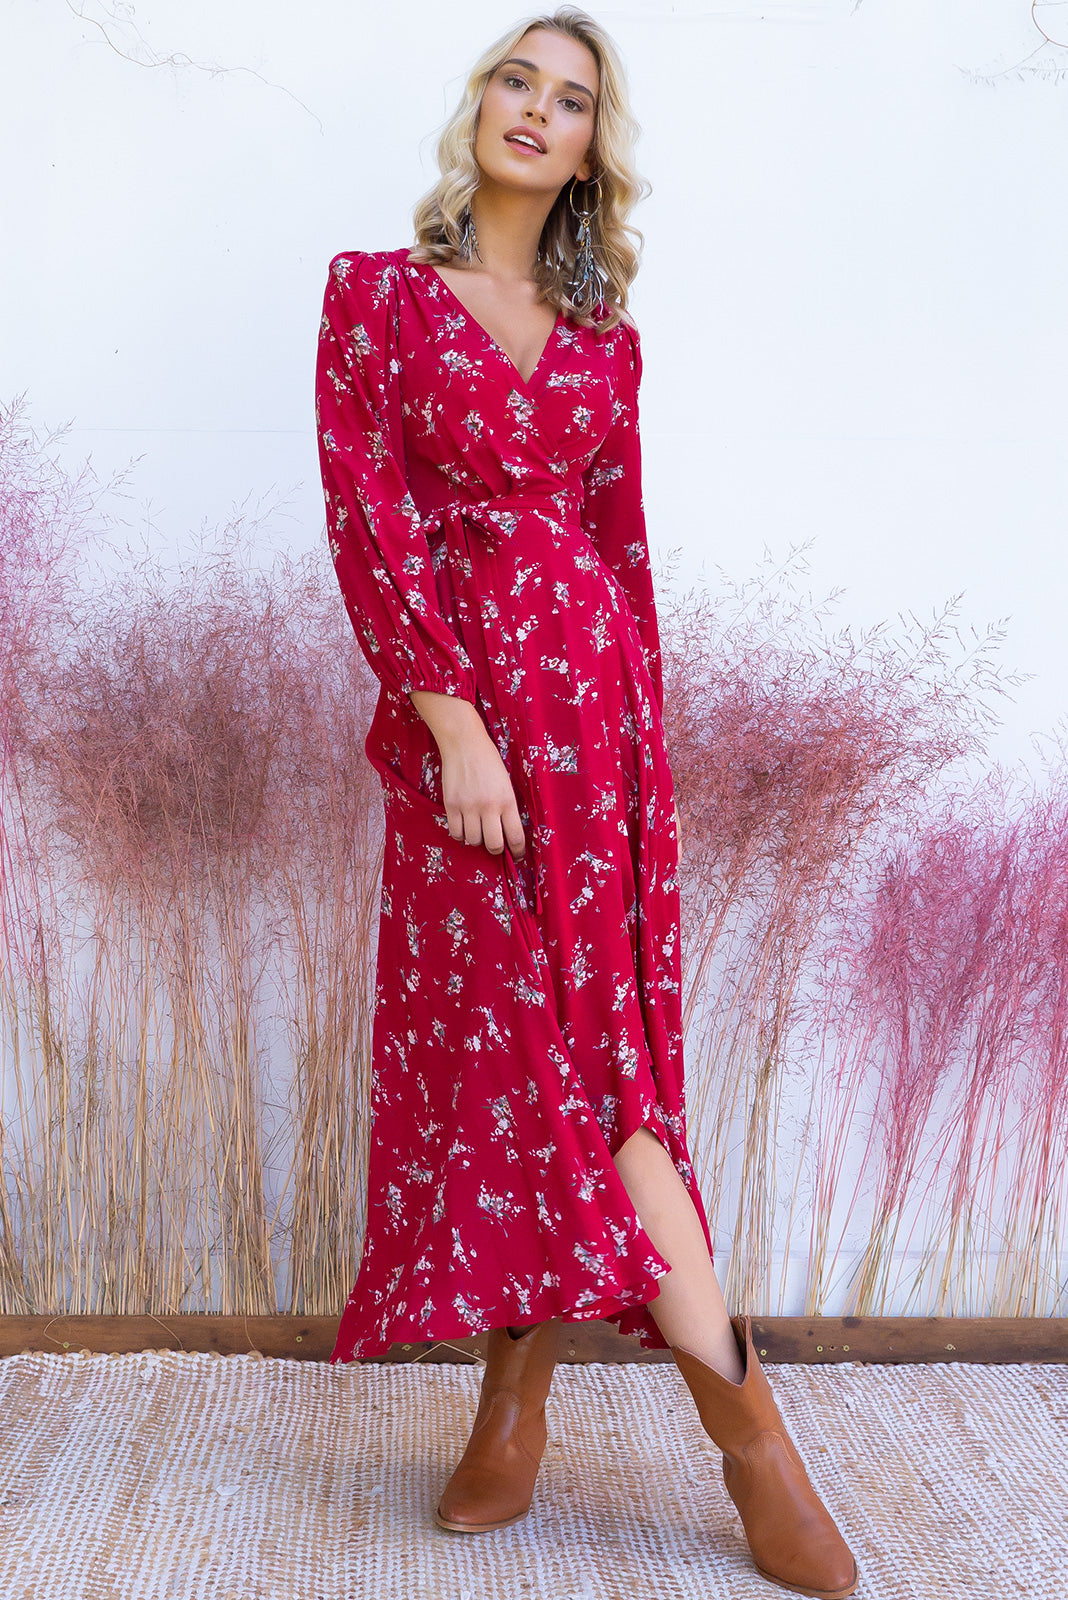 Daydreamer Rumi Red  Maxi Wrap Dress with a full length sleeve in a wrap around style in a romantic vintage boho rose print in a true red ditzy itzy floral print boho gypsy on a soft woven rayon fabr